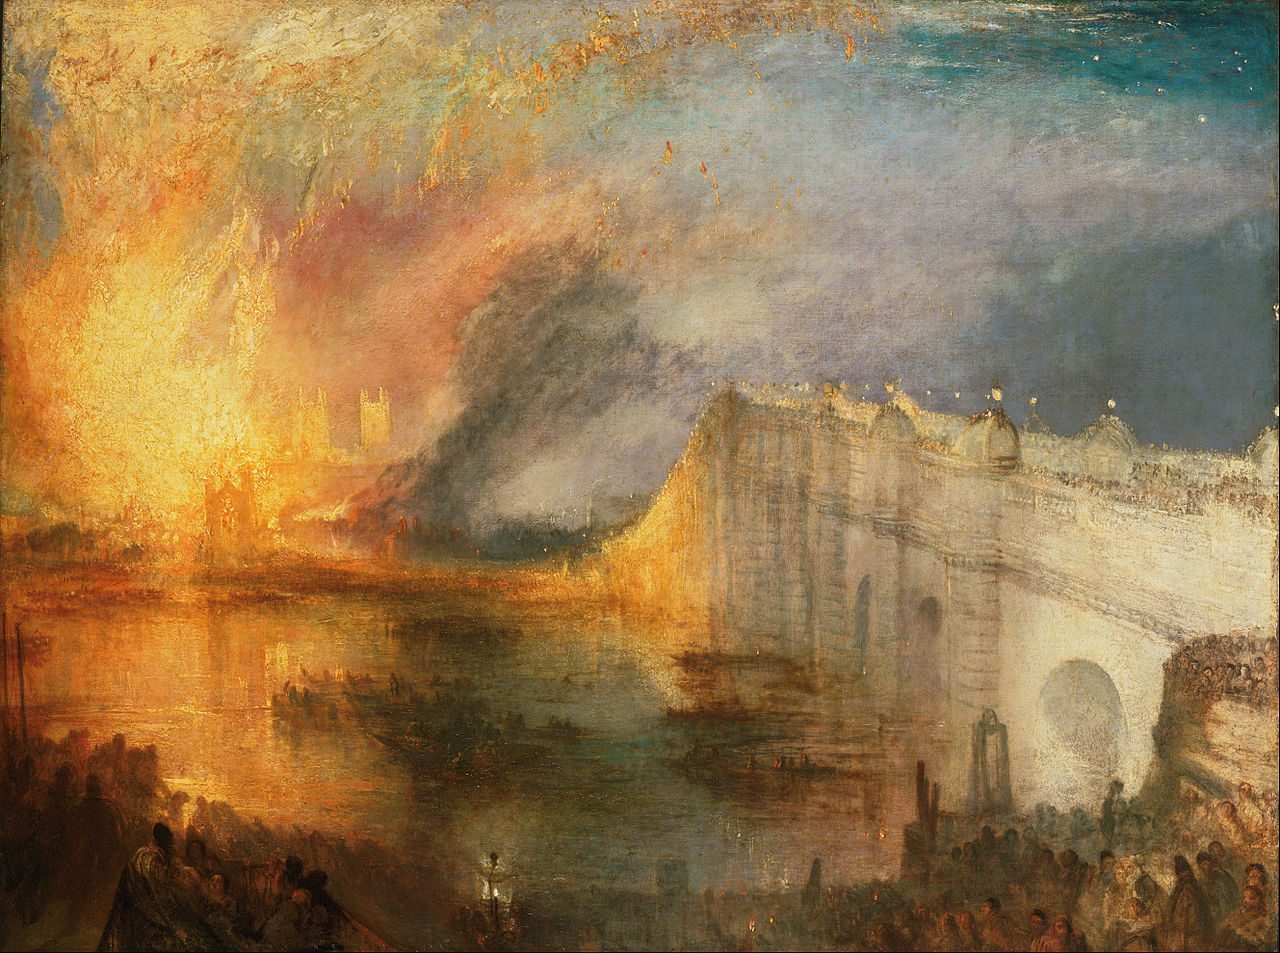 1280px-Joseph_Mallord_William_Turner,_English_-_The_Burning_of_the_Houses_of_Lords_and_Commons,_October_16,_1834_-_Google_Art_Project